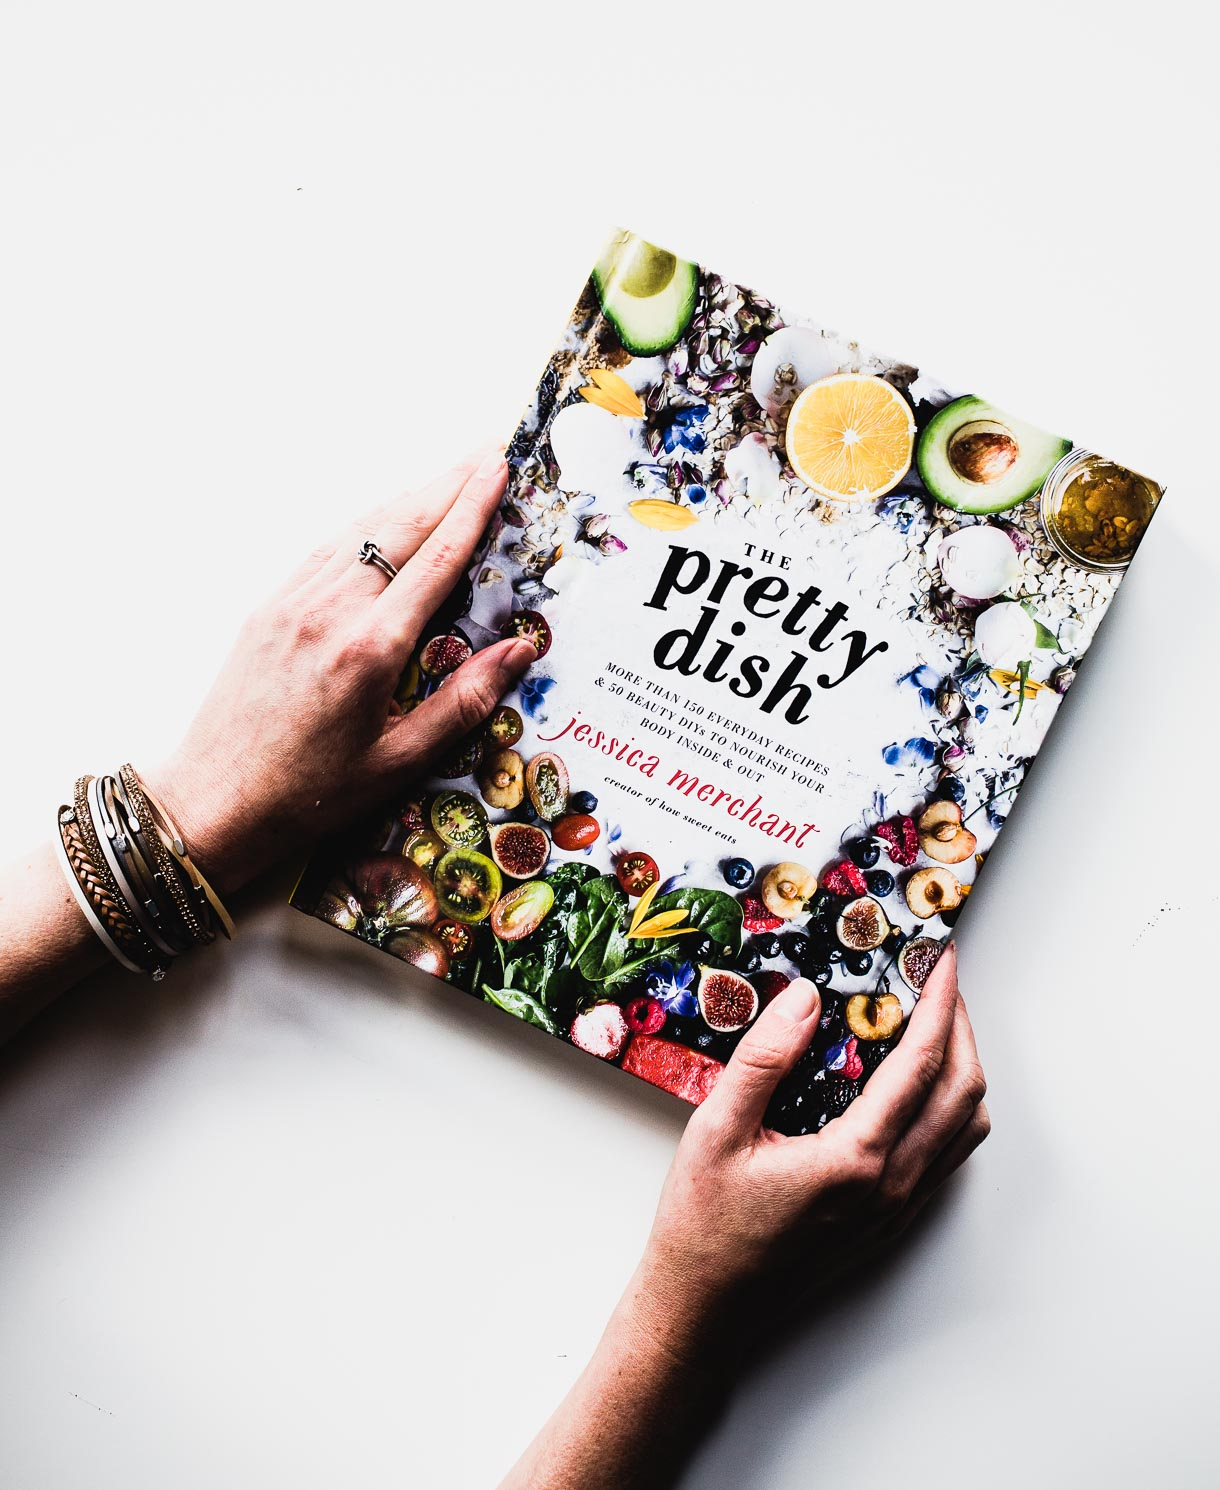 cookbook club review: The Pretty Dish by Jessica Merchant